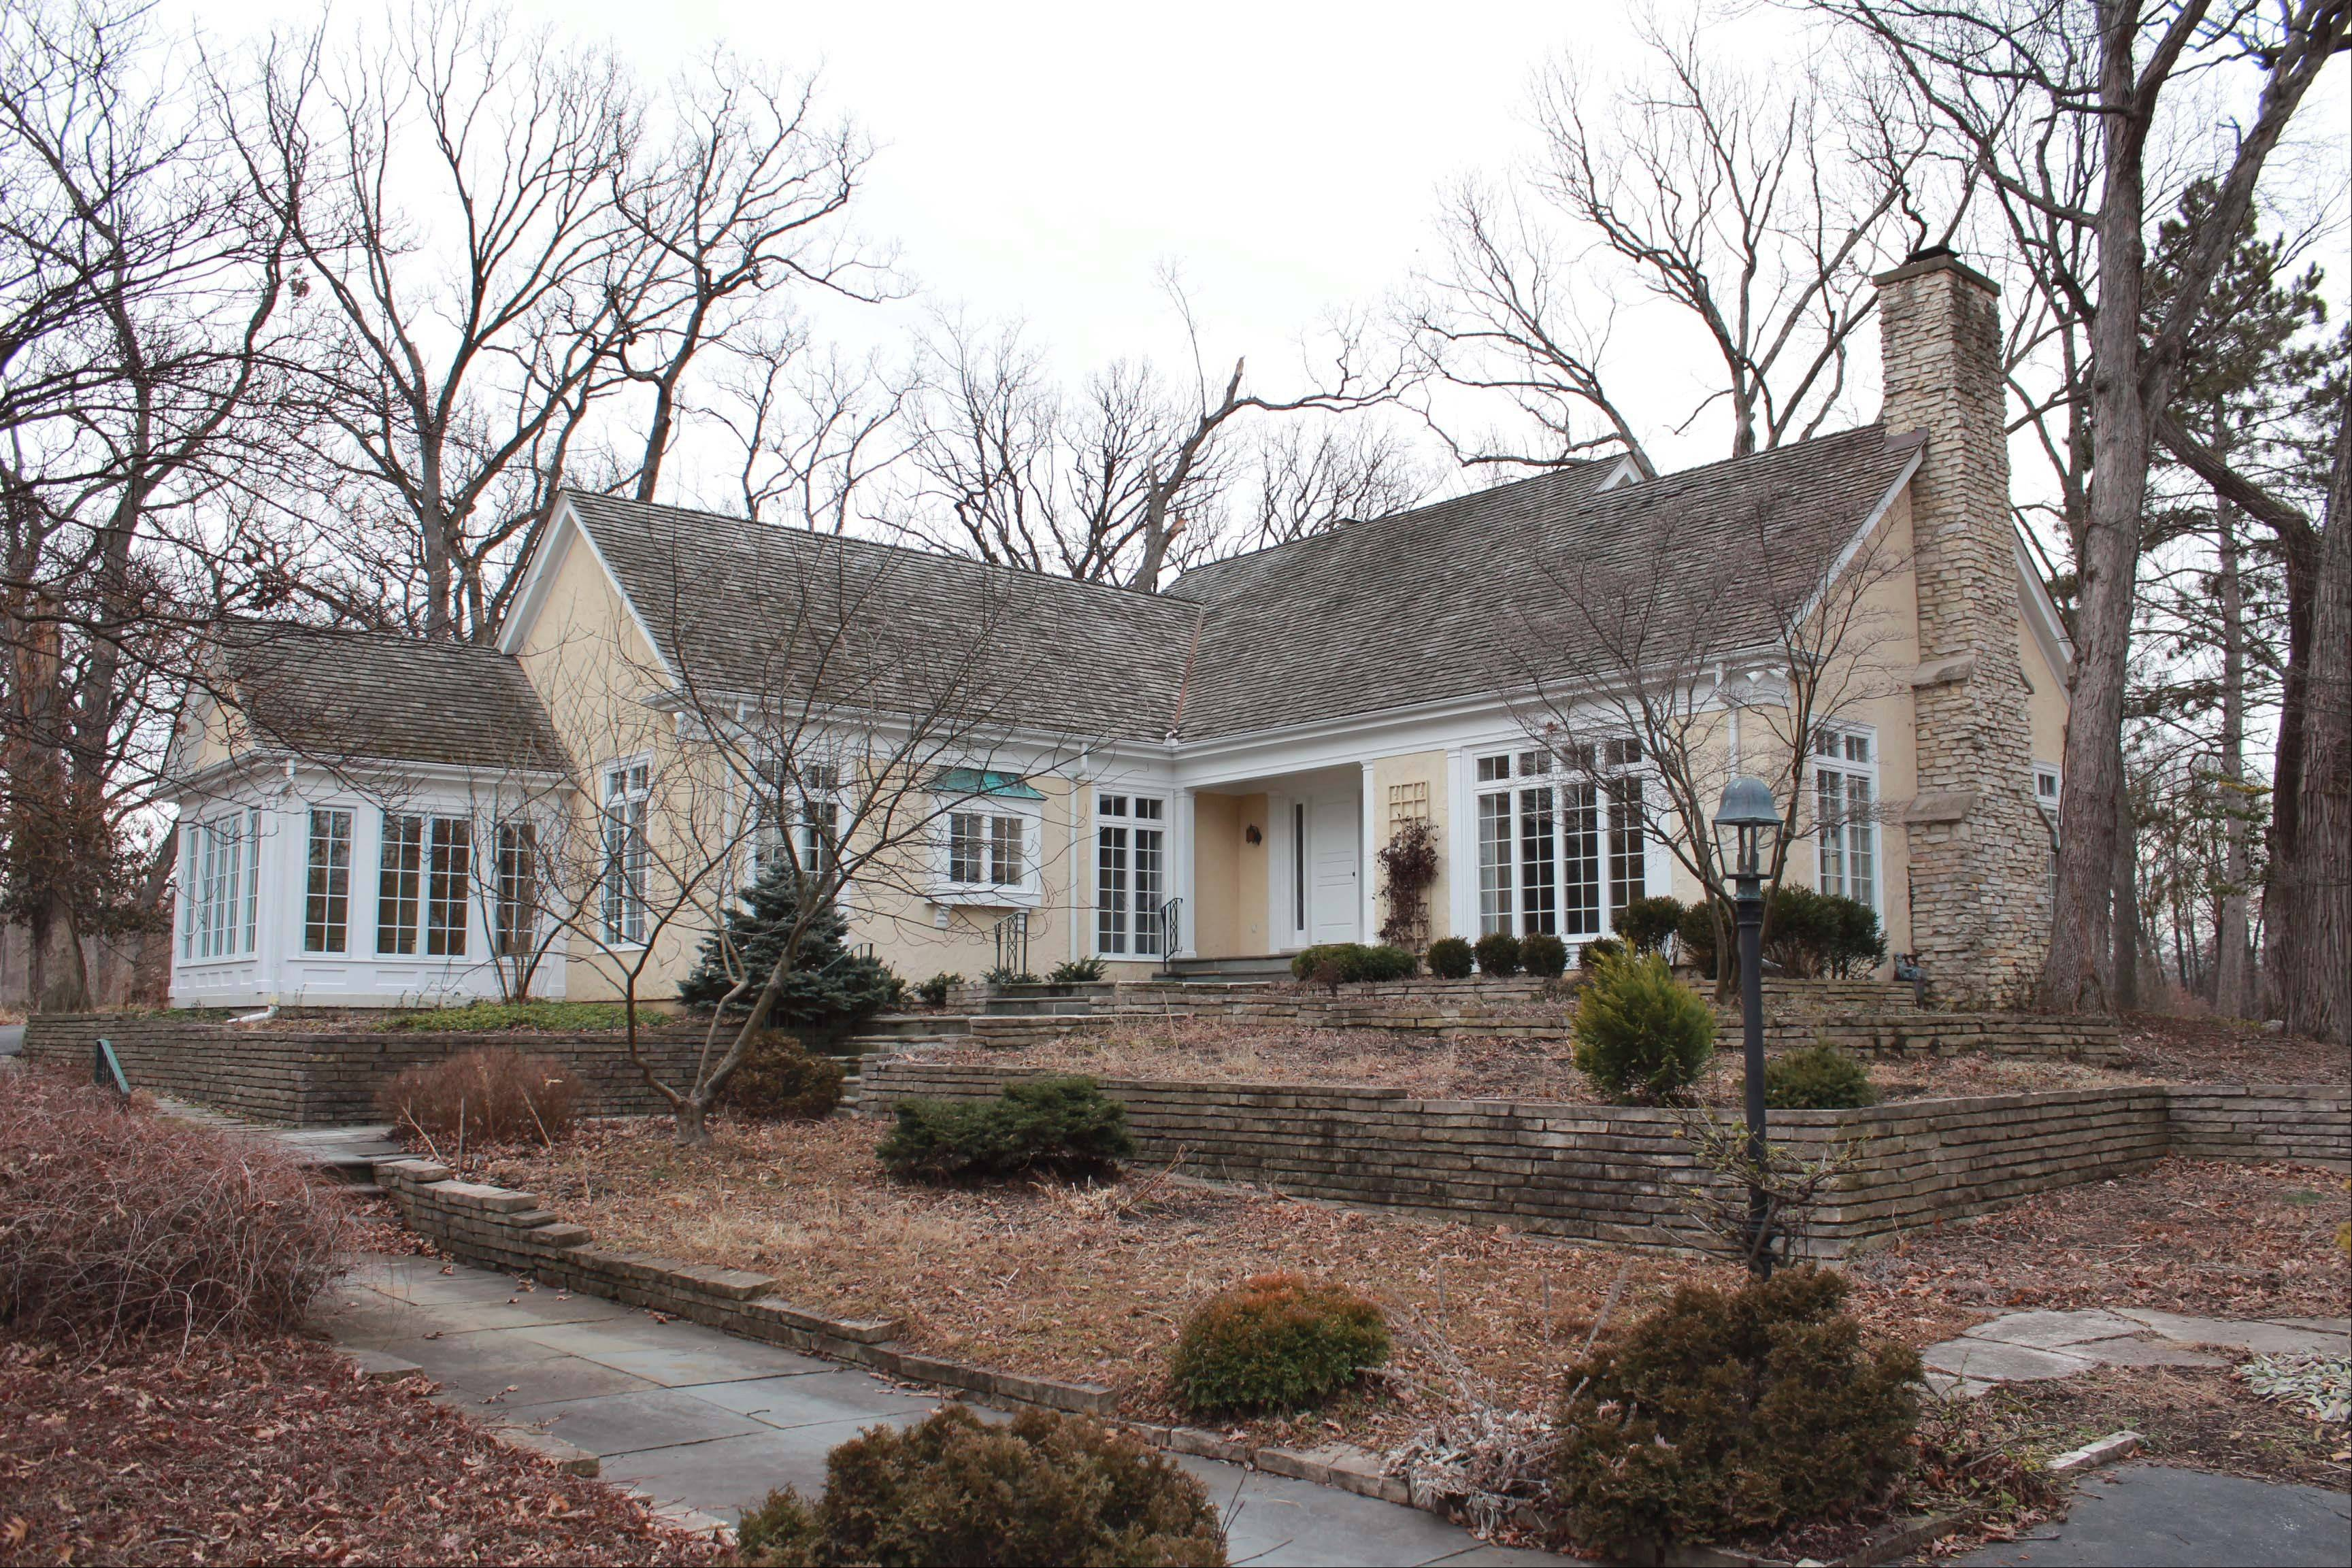 Douglas and Fran Mains agreed to sell their property and house in West Chicago to the DuPage County Forest Preserve District in 2007. They have since donated most of the purchase price back to the district.